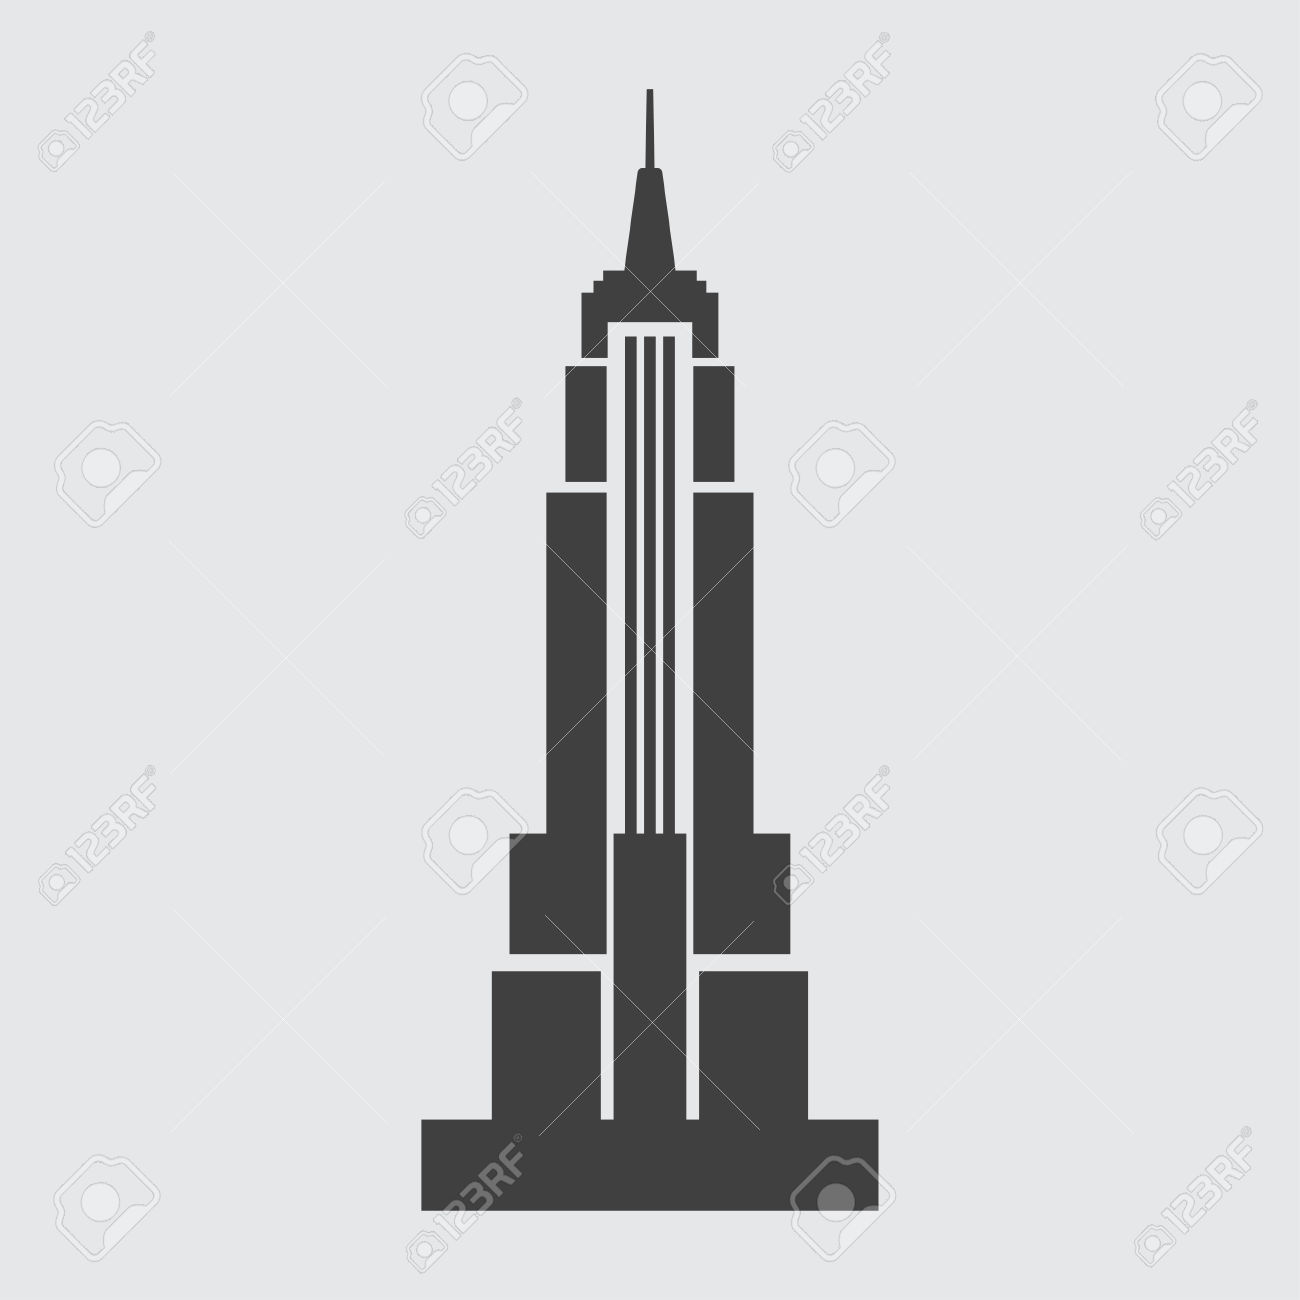 Empire State Building clipart #16, Download drawings